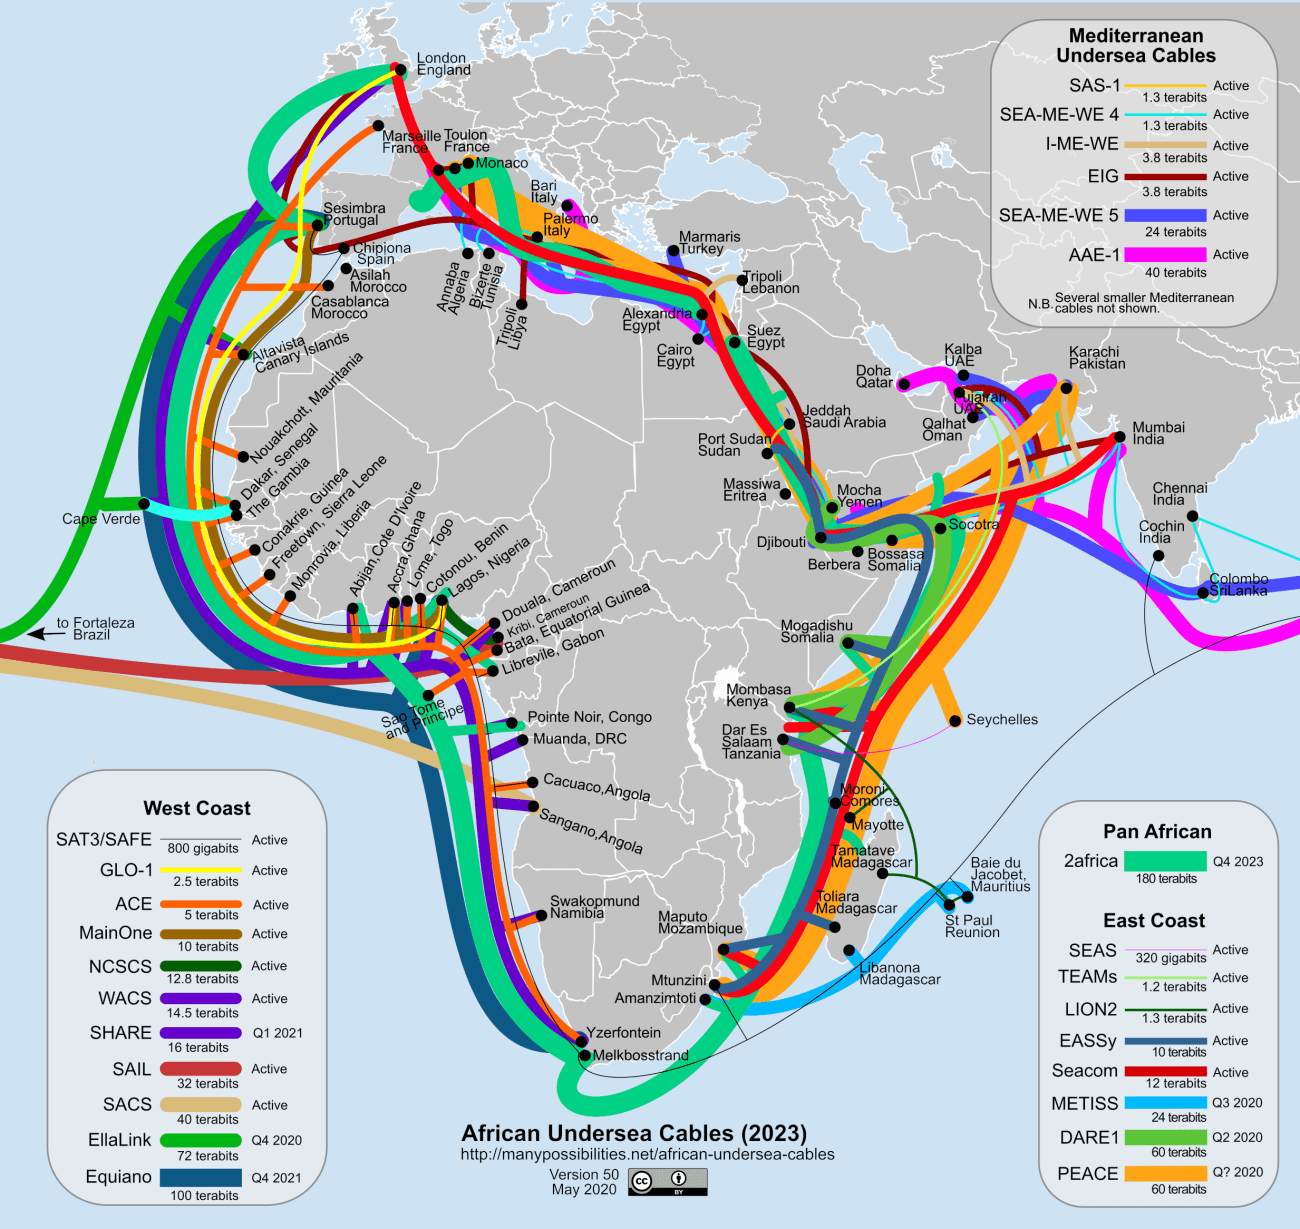 African Undersea Cables